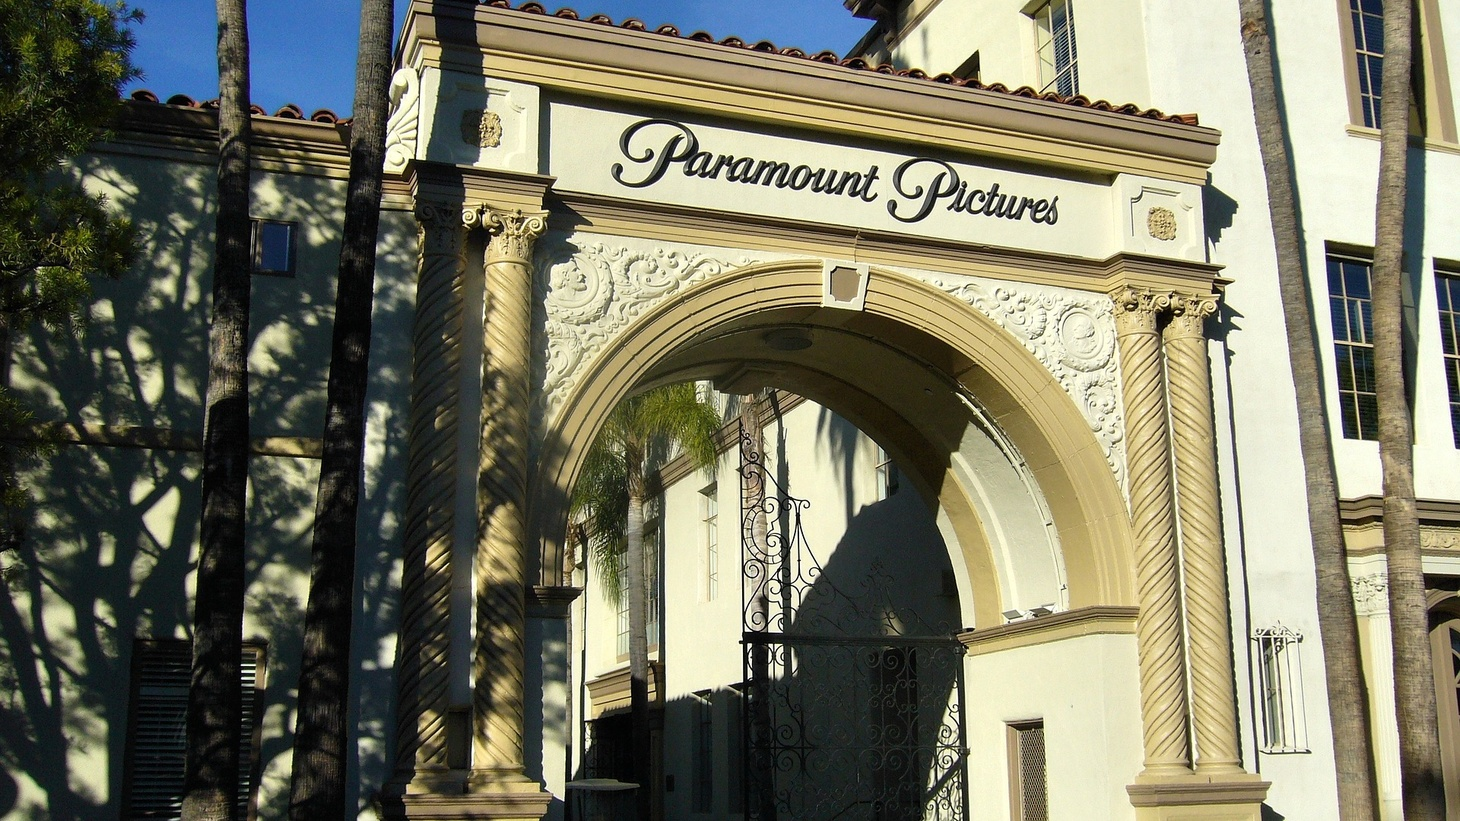 The newest streamer Paramount+ is launching on March 4. Parent company ViacomCBS revealed that lots of old titles will be rebooted.